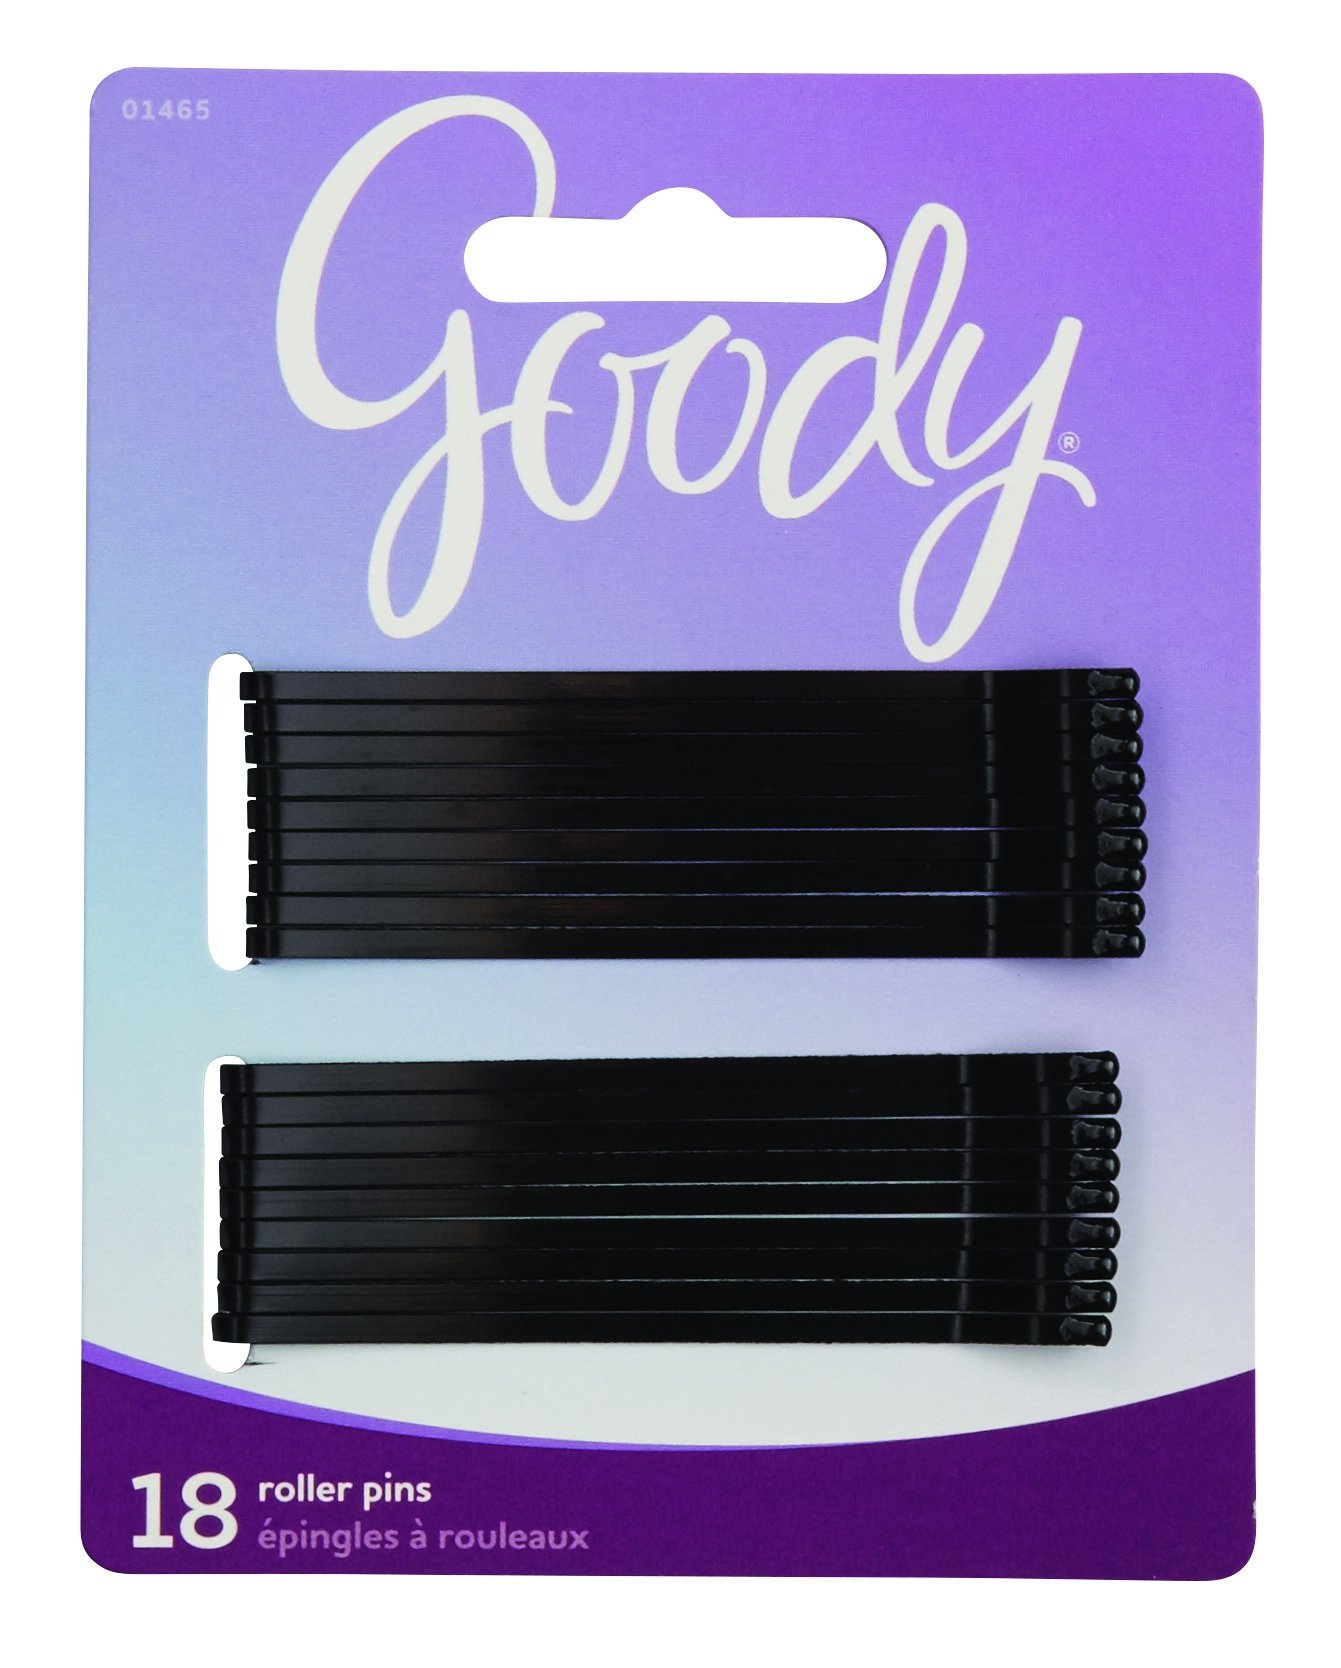 Goody Black Roller Pins, 3 inches 18 ea (Pack of 6)